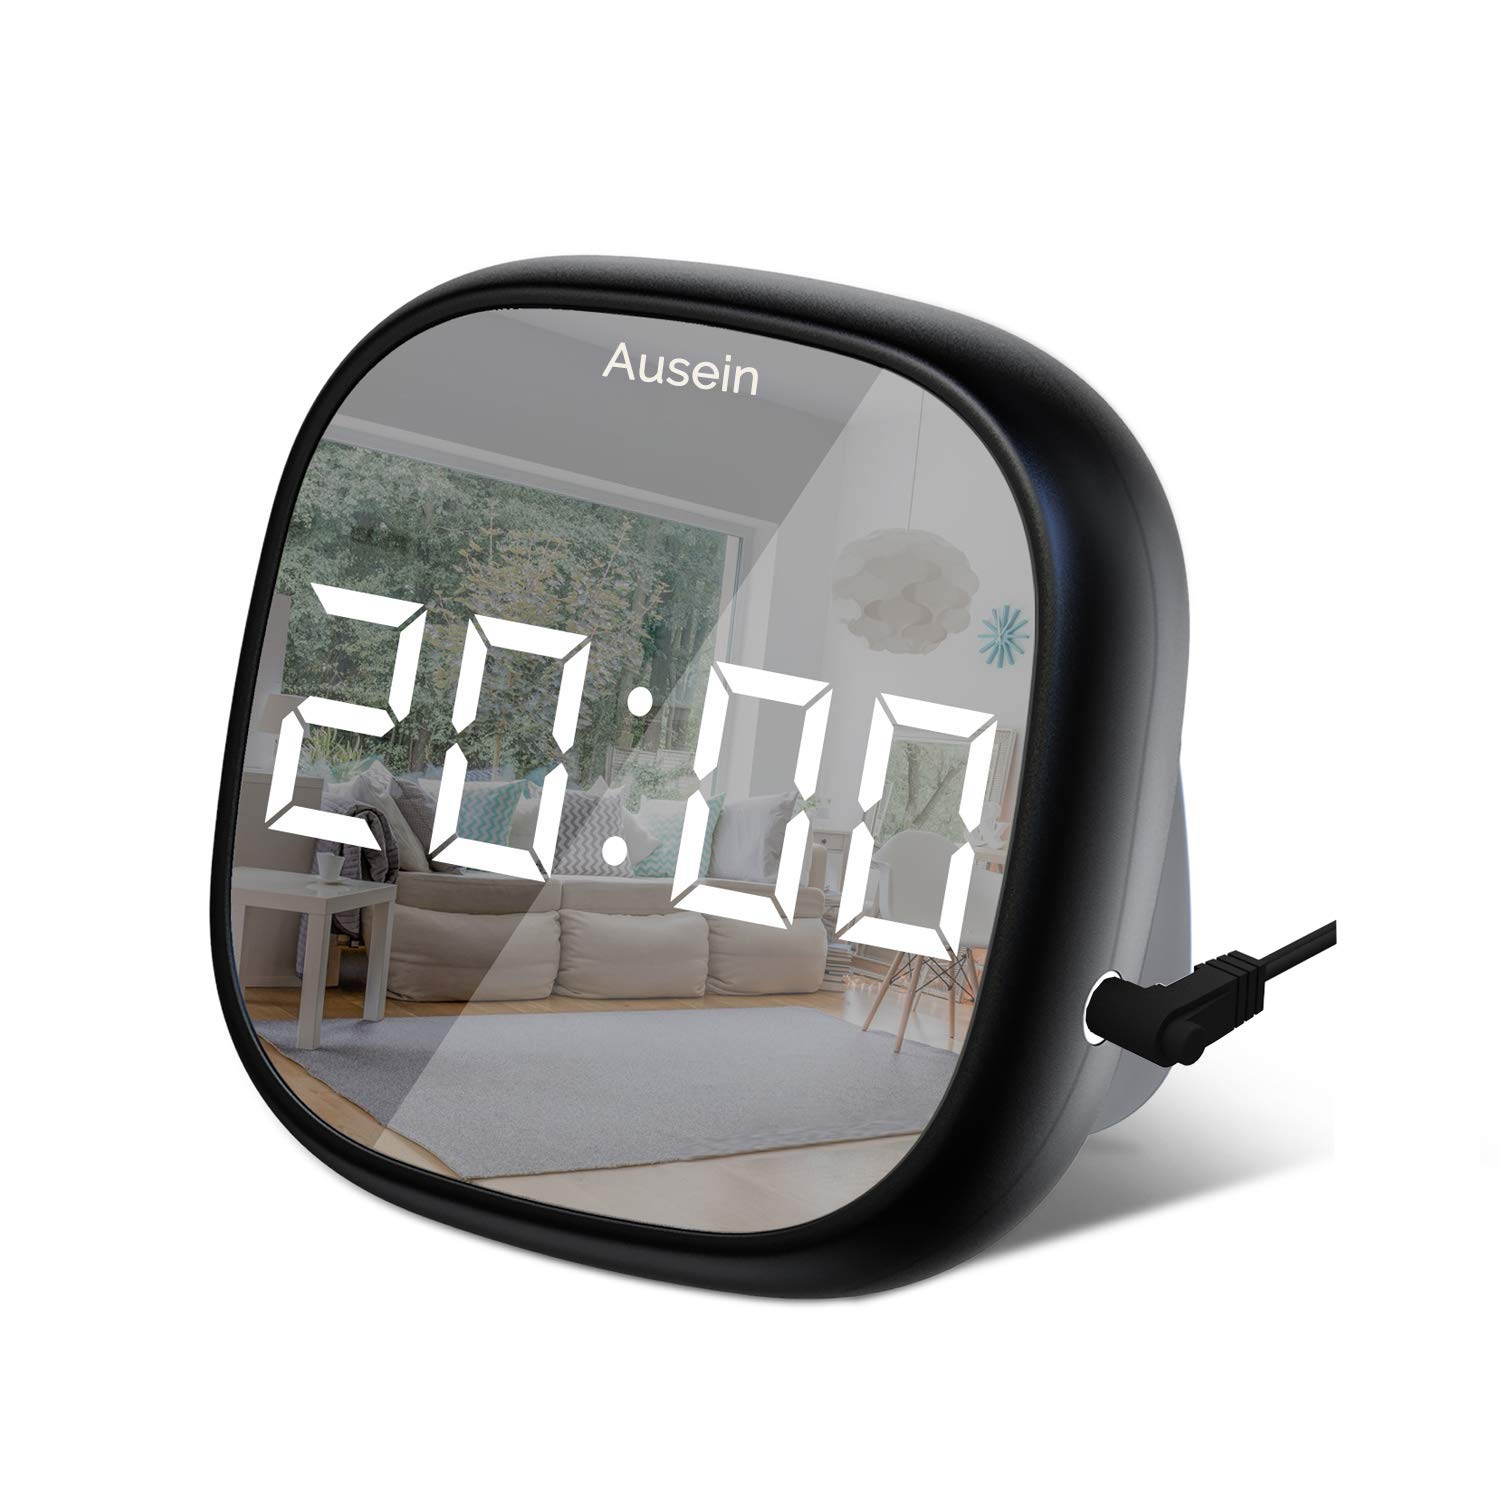 Very nice large numbered digital alarm clock